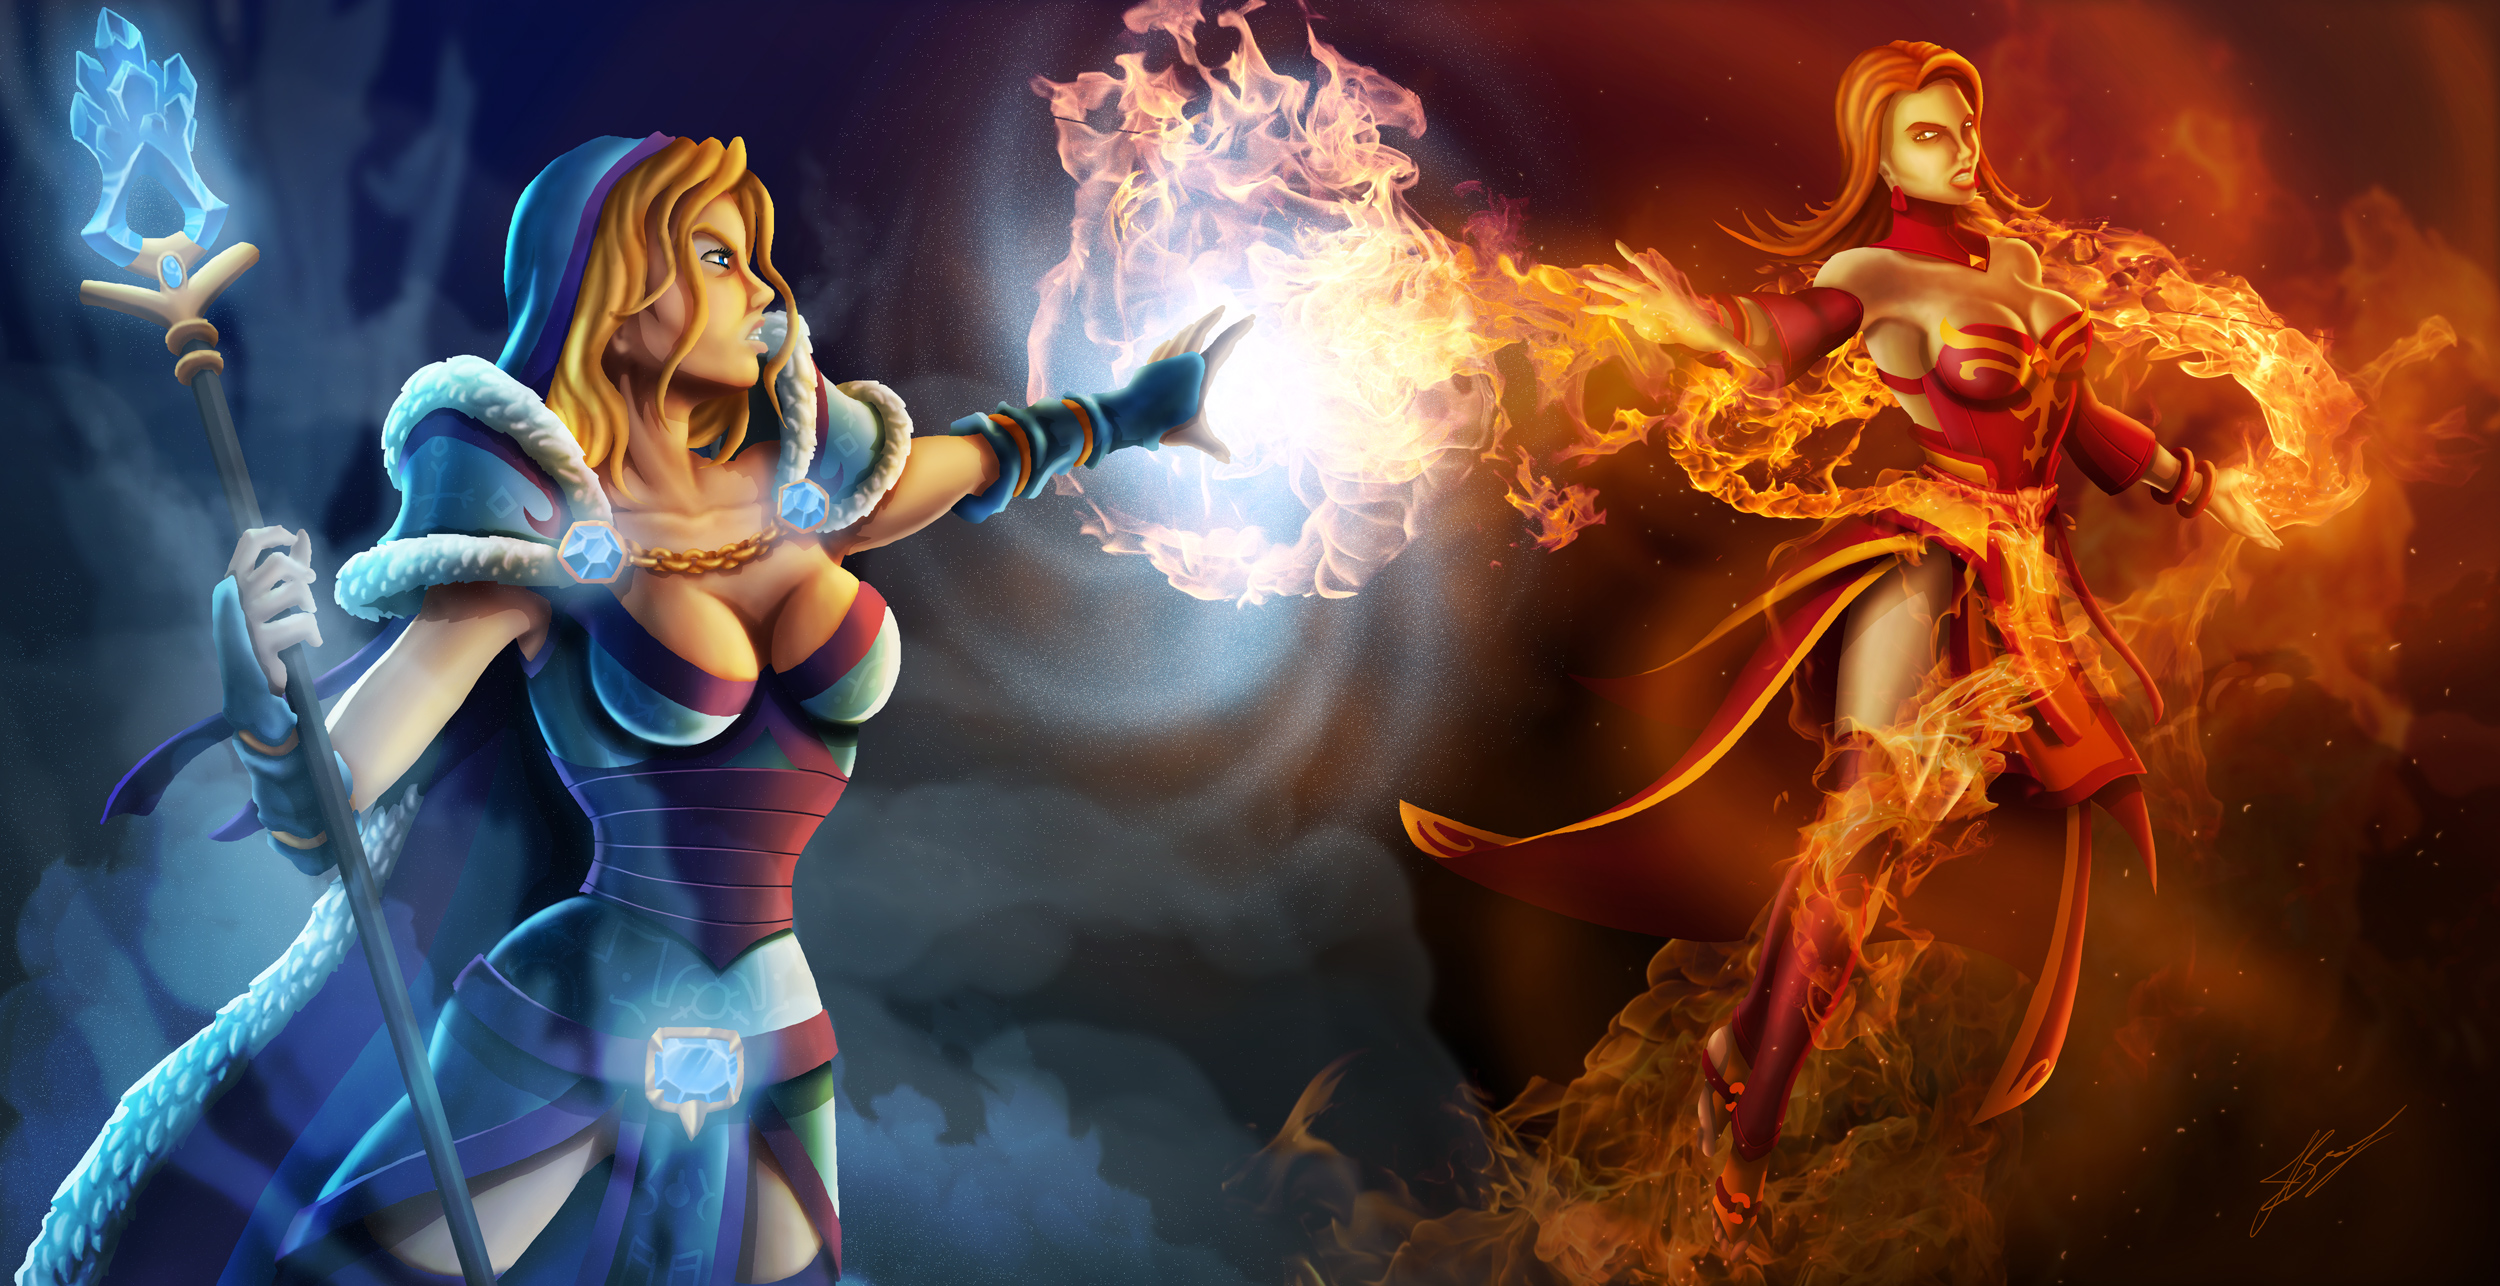 Crystal Maiden Vs. Lina